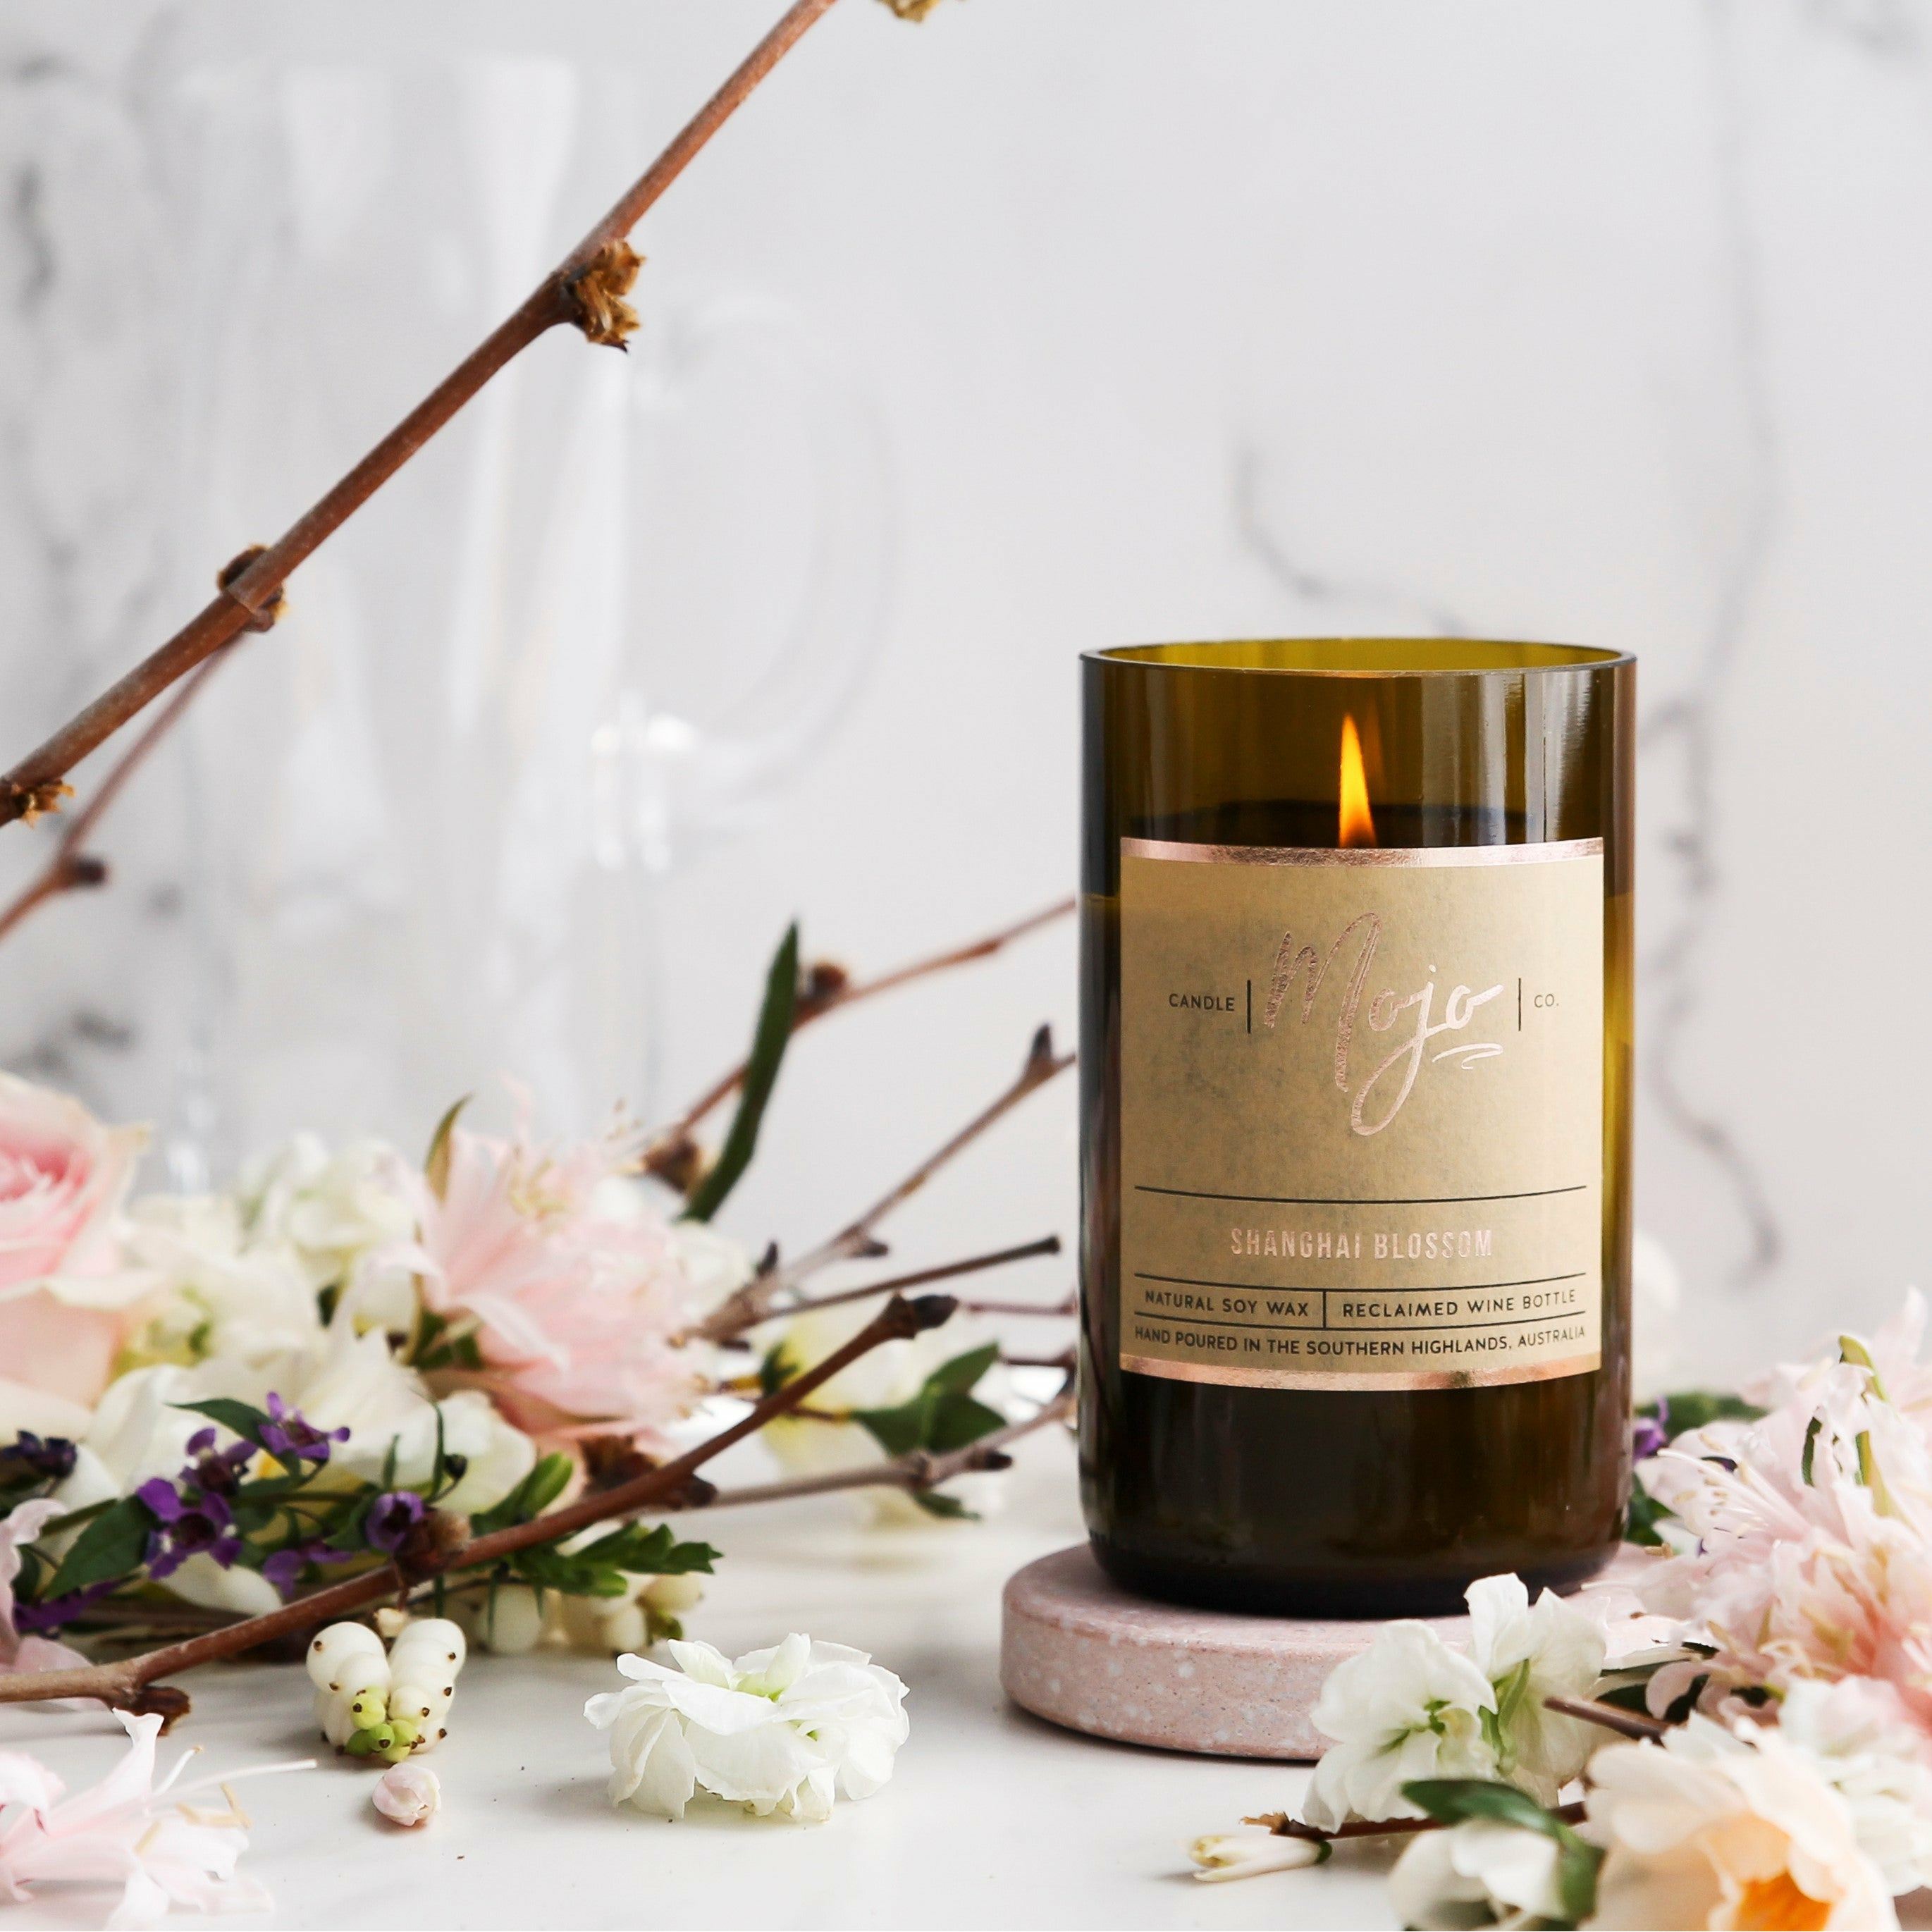 Wine Bottle Candle - Limited Edition - Shanghai Blossom